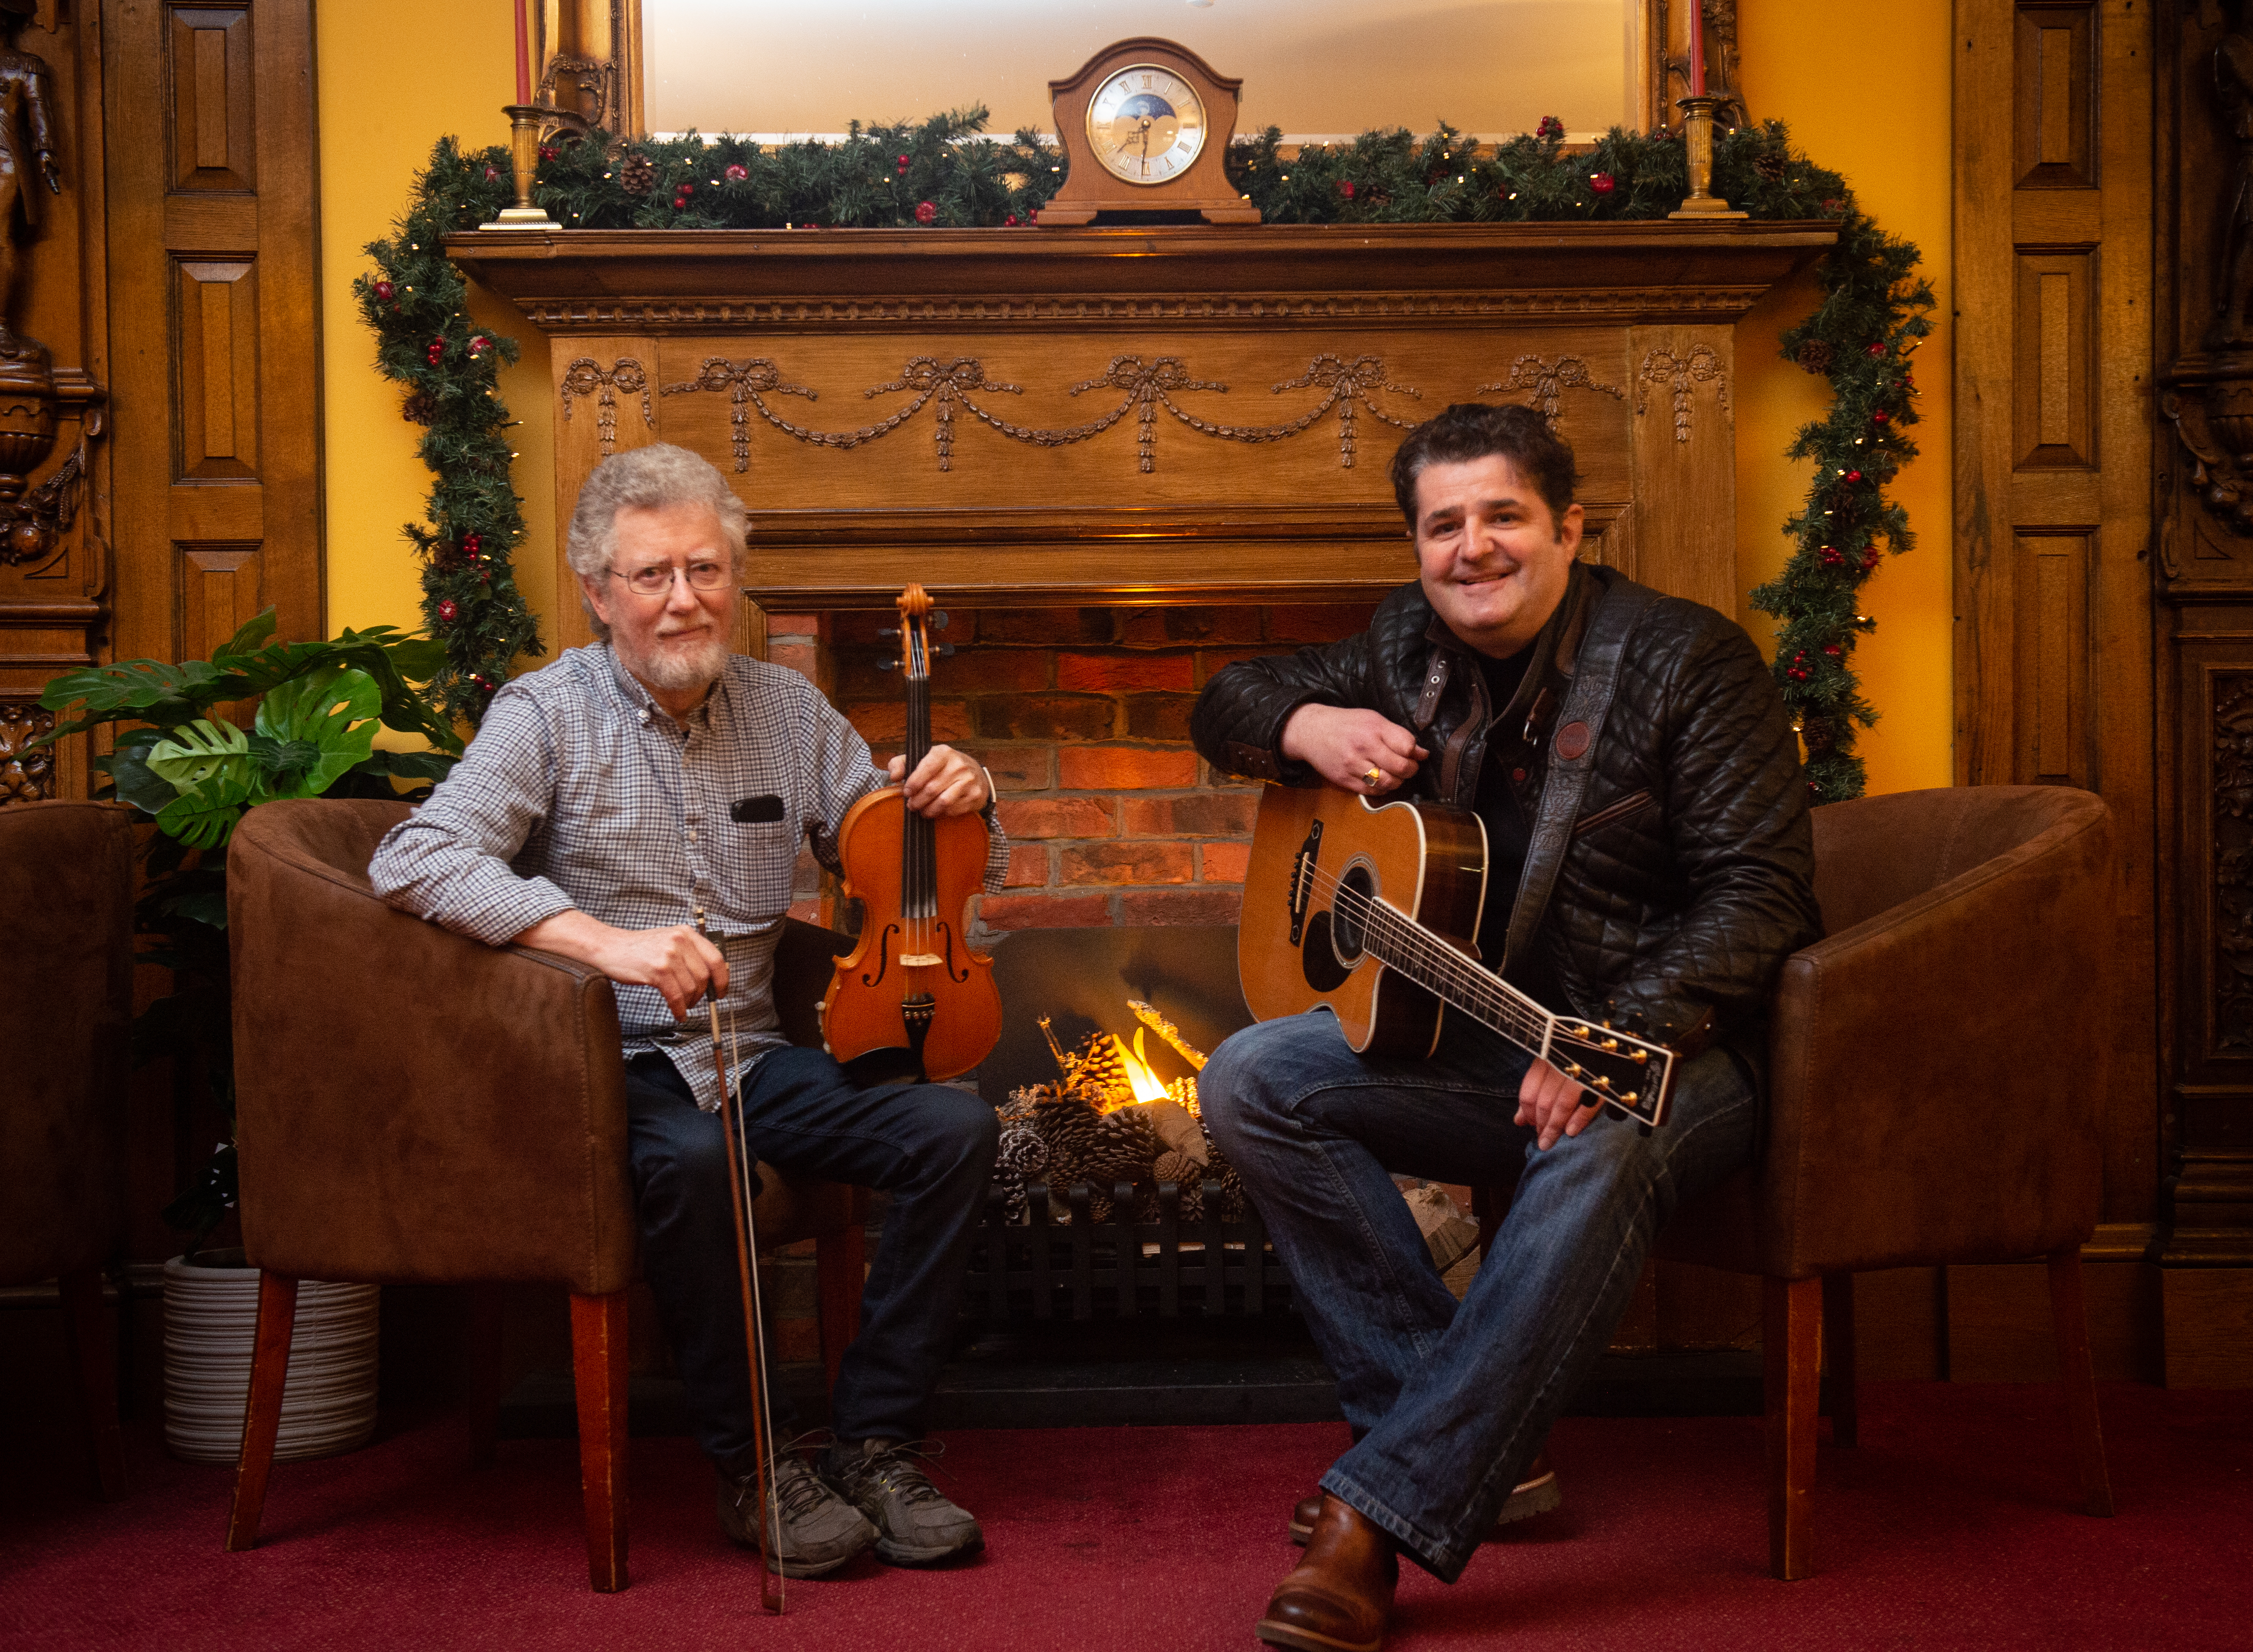 Founder James Alexander (fiddle) and committee member Colin Mackay (guitar), Picture by Jason Hedges